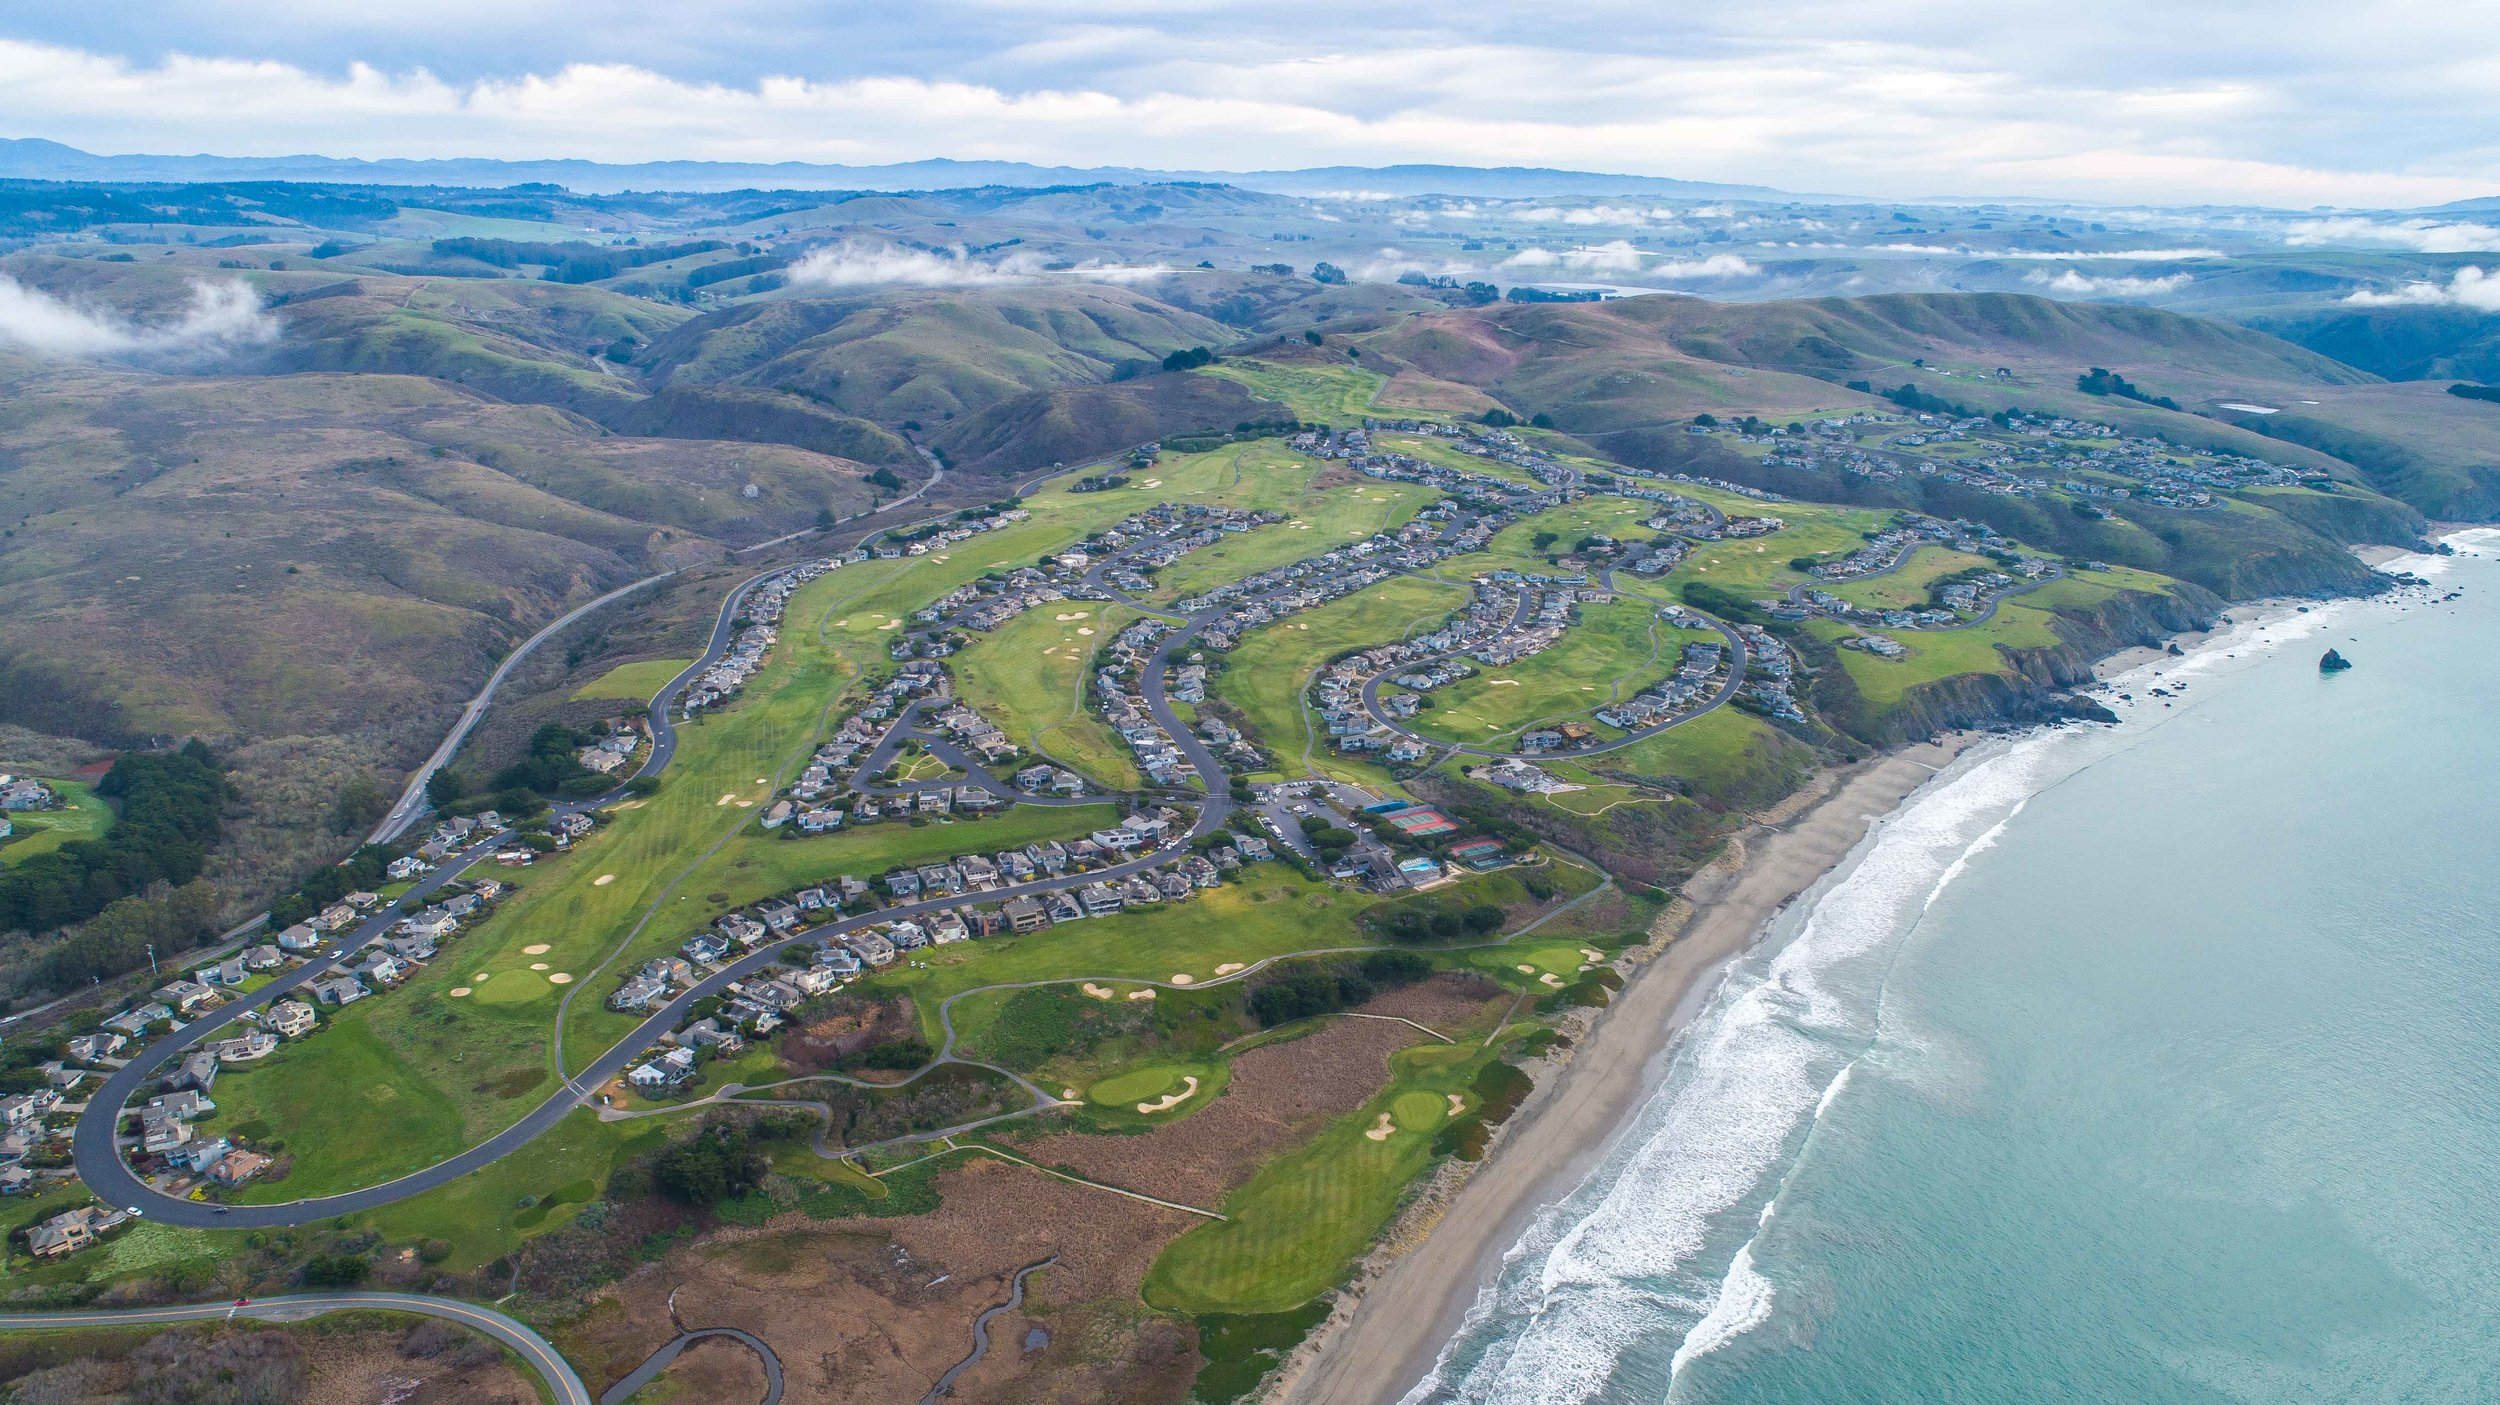 The view from above The Links at Bodega Harbor.